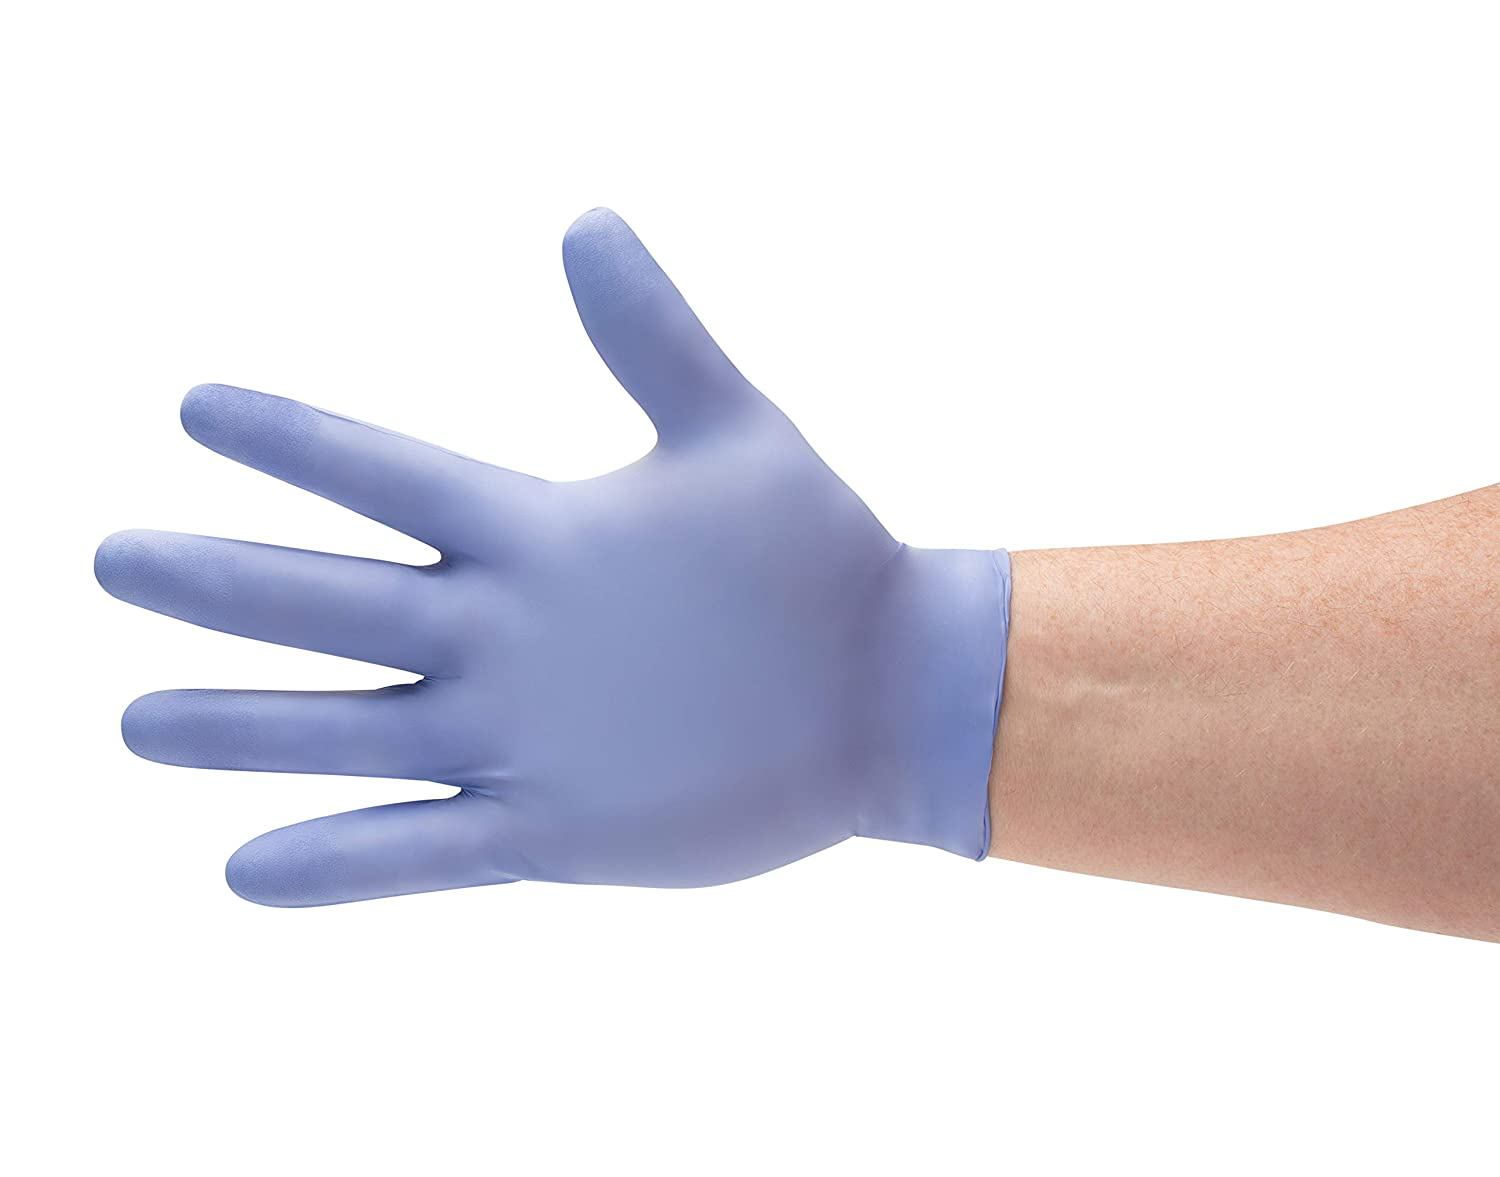 Disposable Nitrile Gloves, Latex Free Medical Exam Gloves, Powder Free,  Size Small, Blue, 100 Pack : Amazon.in: Industrial & Scientific